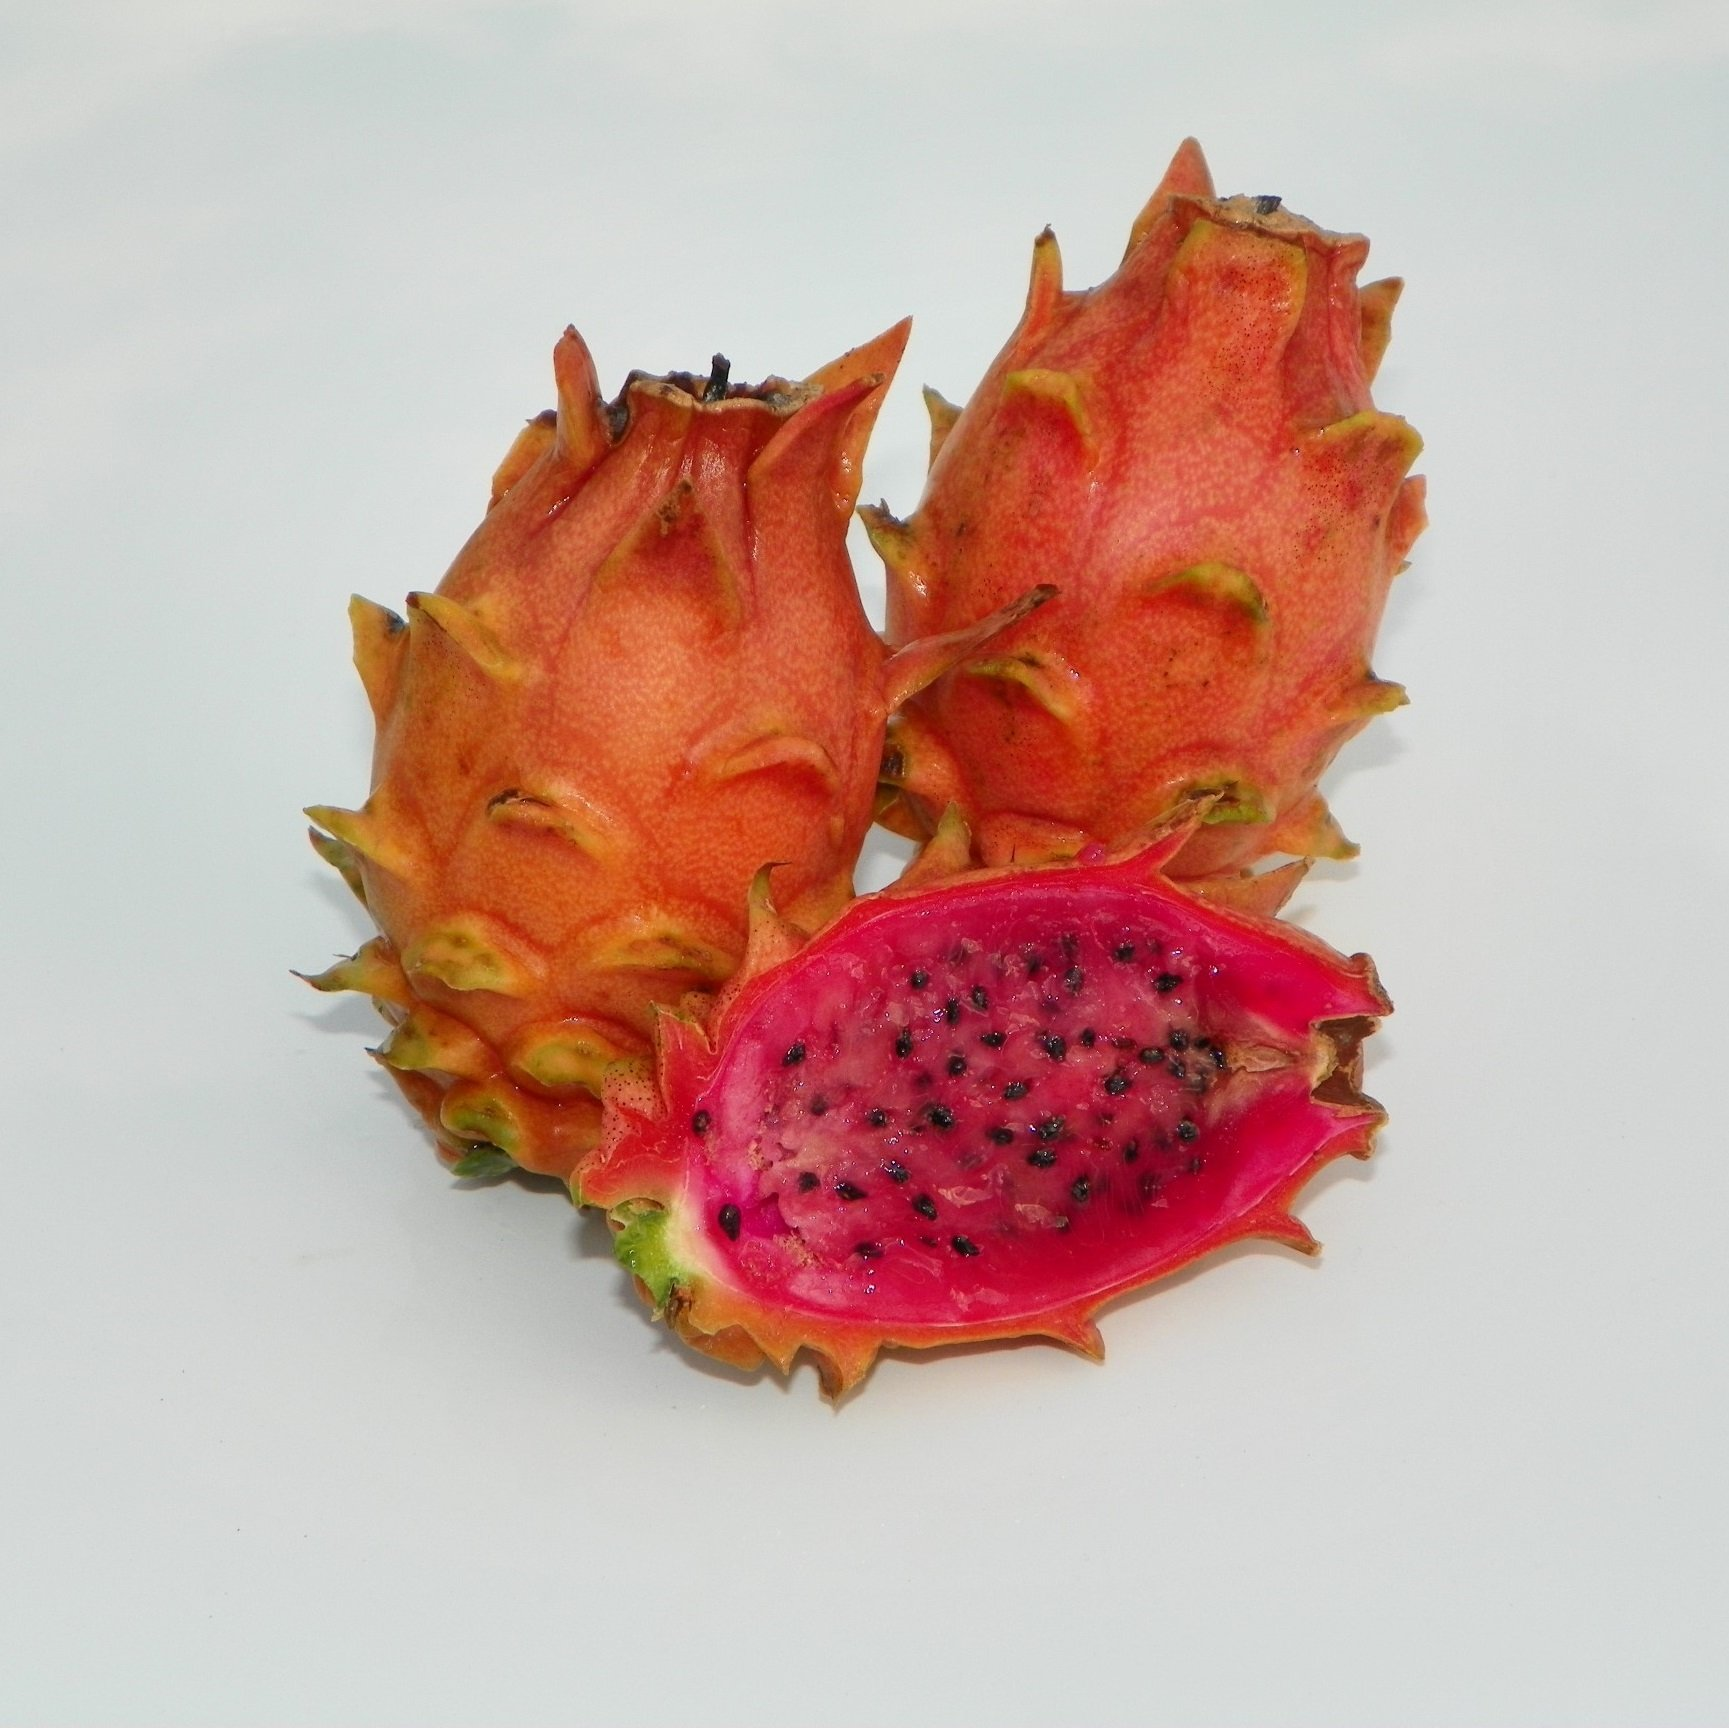 Dragon Fruit variety Frankies Red fruit sliced